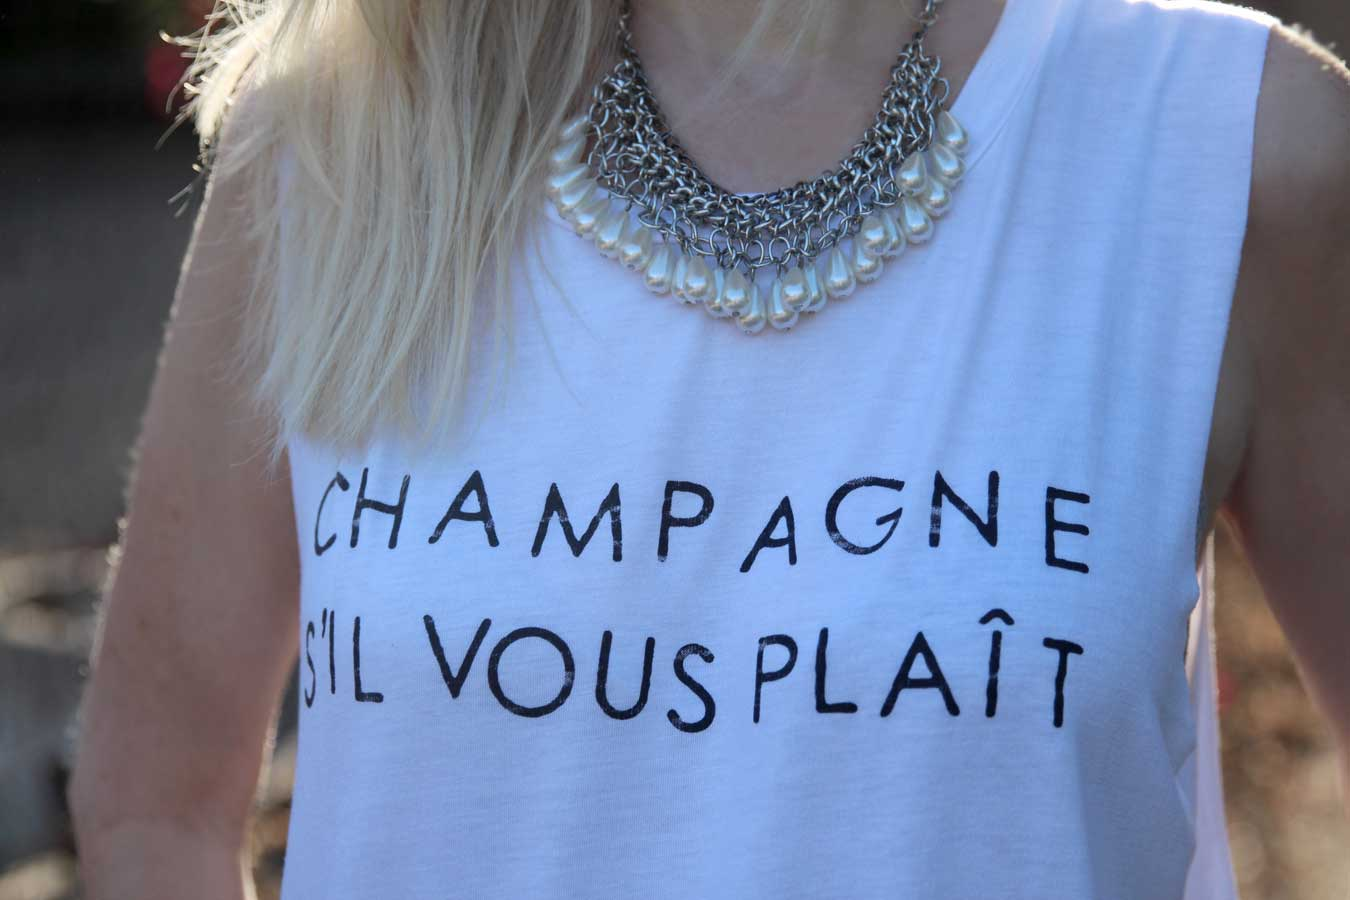 currently crushing, champagne sil vous plait t shirt, j crew distressed boyfriend jeans